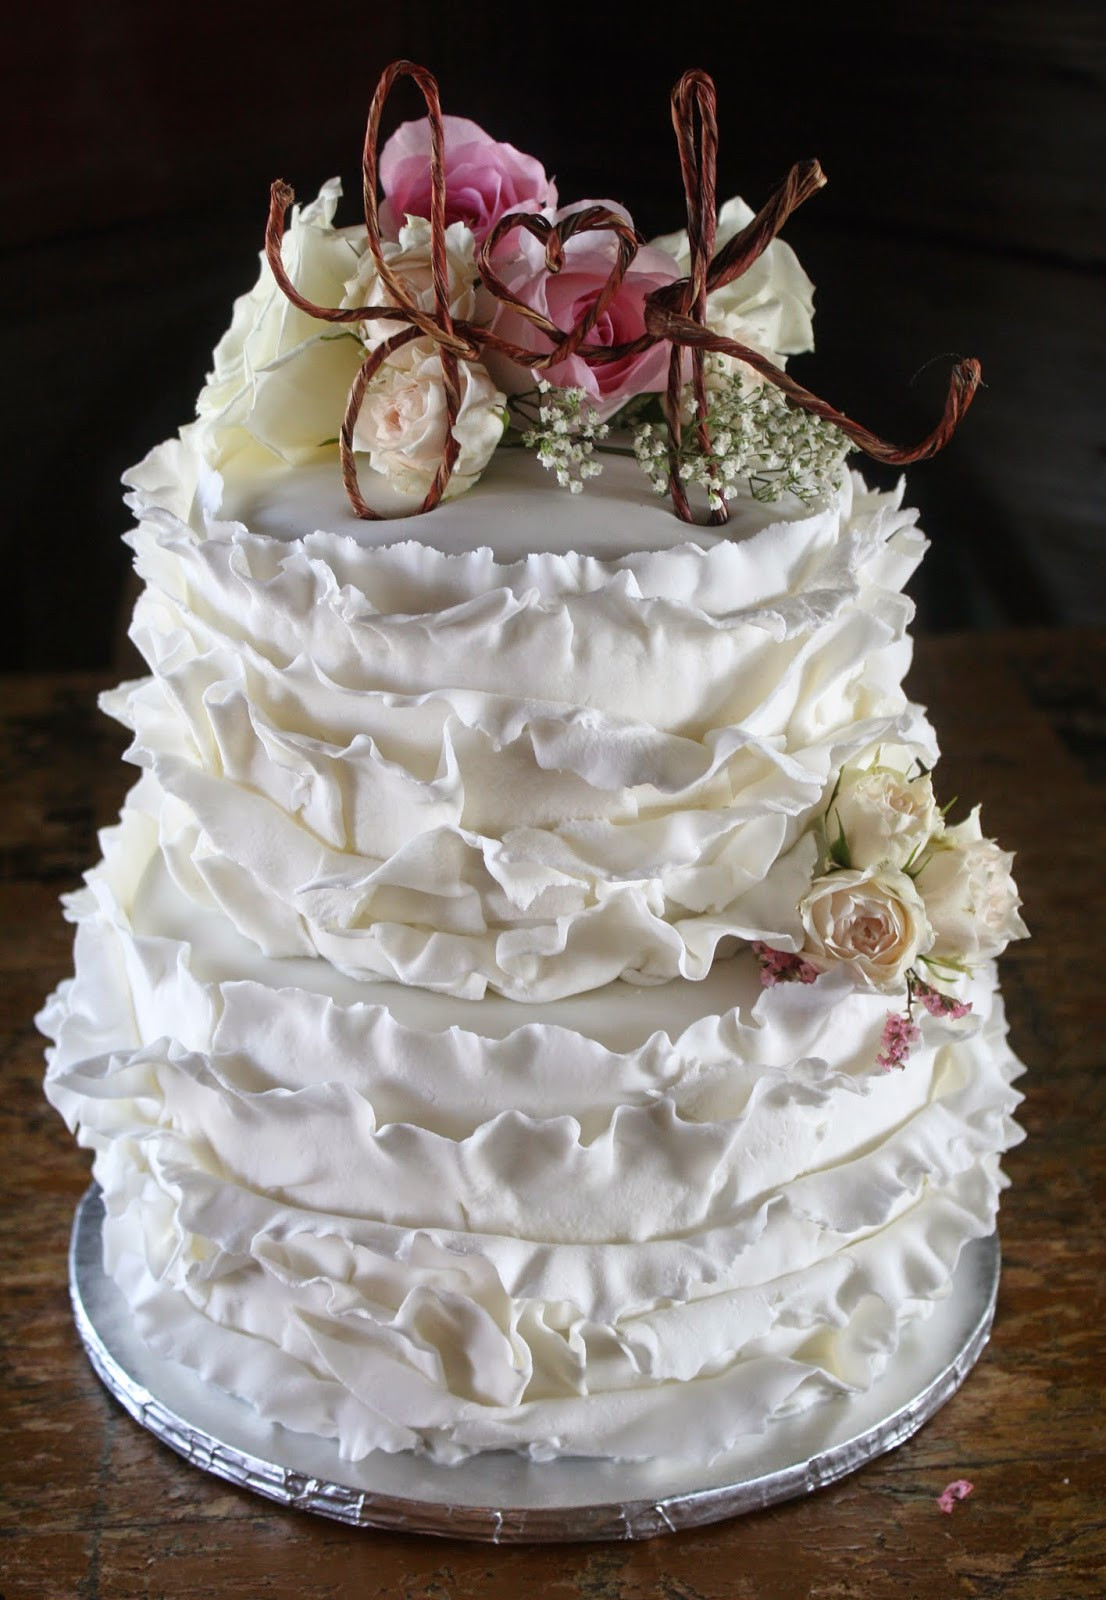 Best ideas about Shabby Chic Wedding Cake . Save or Pin A Shabby Chic Wedding Cake and some wedding decor pics Now.